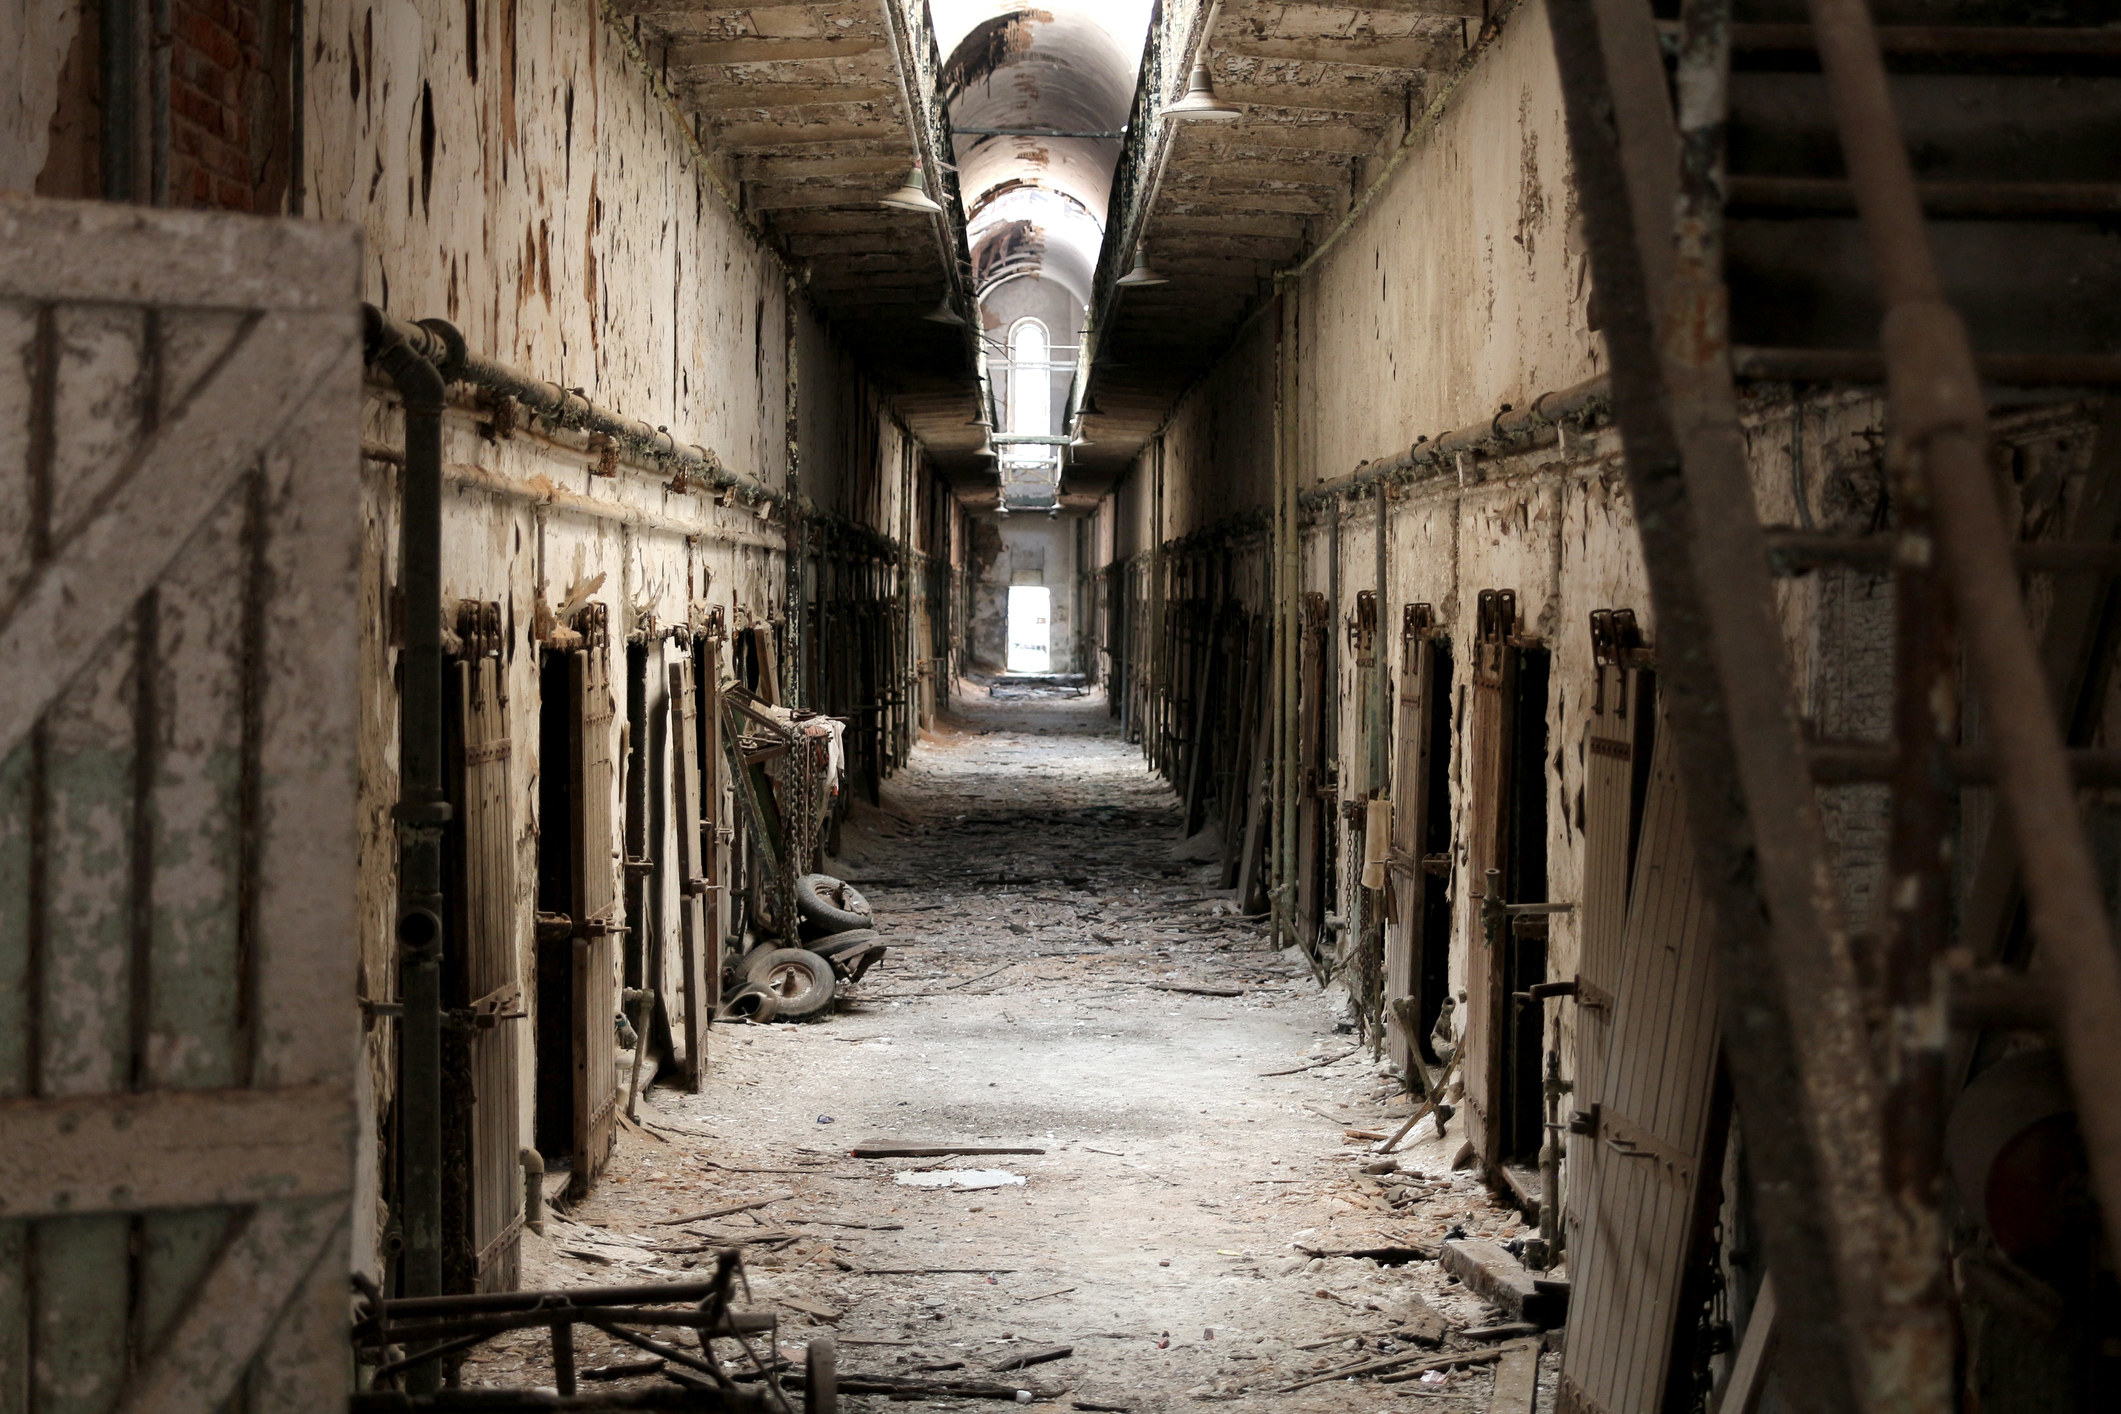 A view down an abandoned cellblock at Eastern State Penitentiary